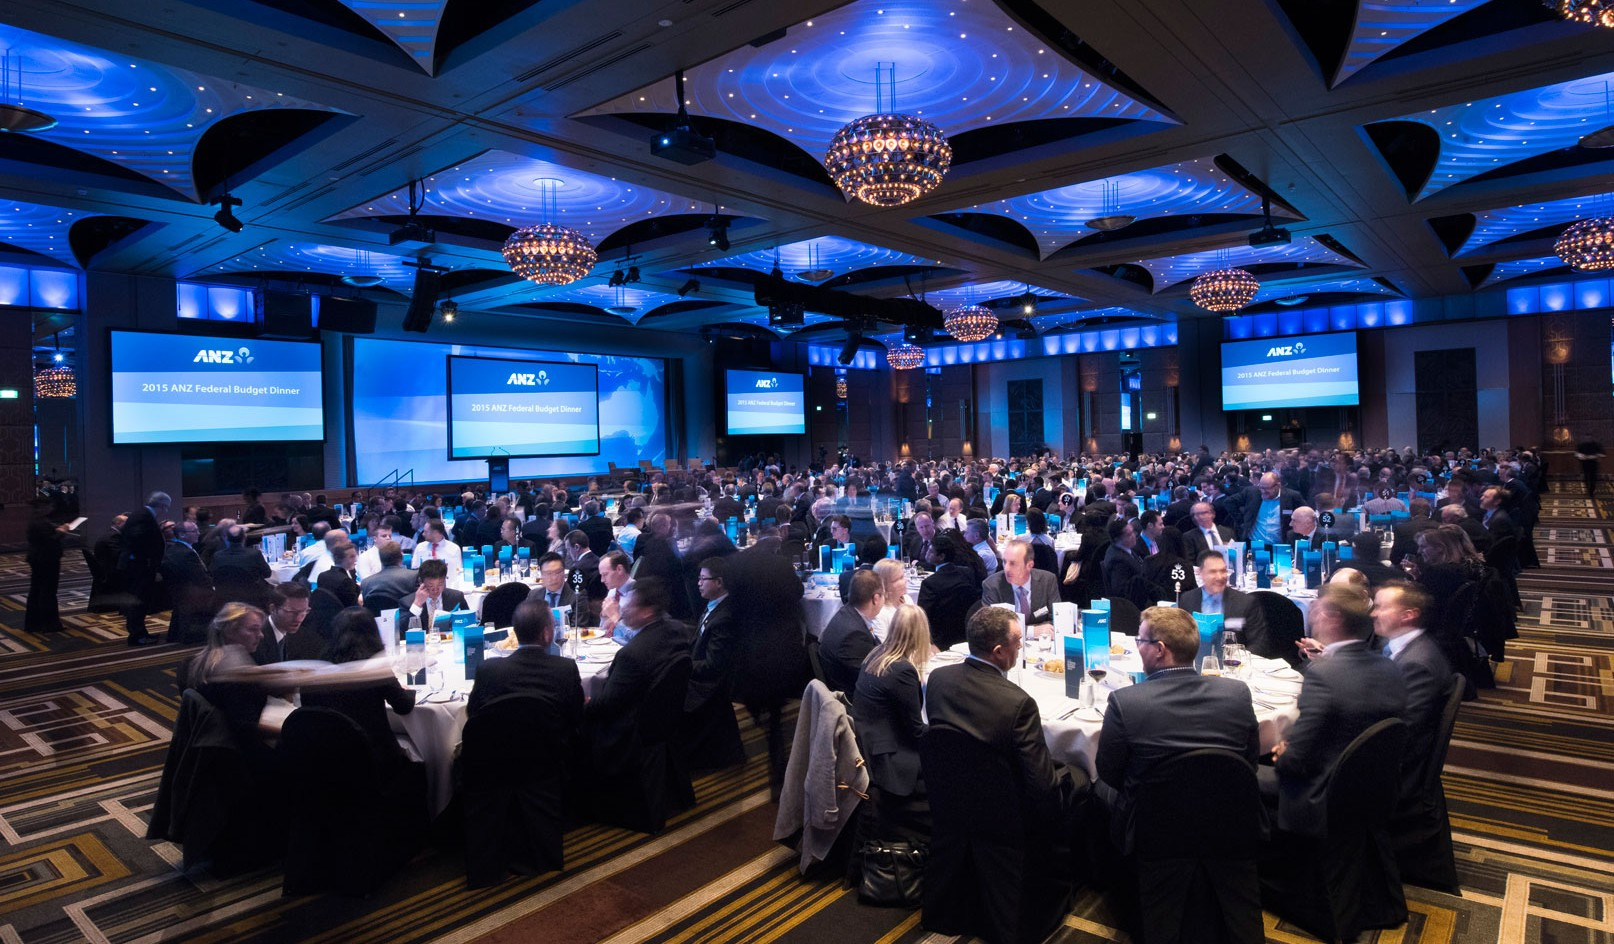 <div>Events</div><div> <a href='https://nedmeldrum.com.au/project/anz-federal-budget-dinner/'>View Series</a></div>